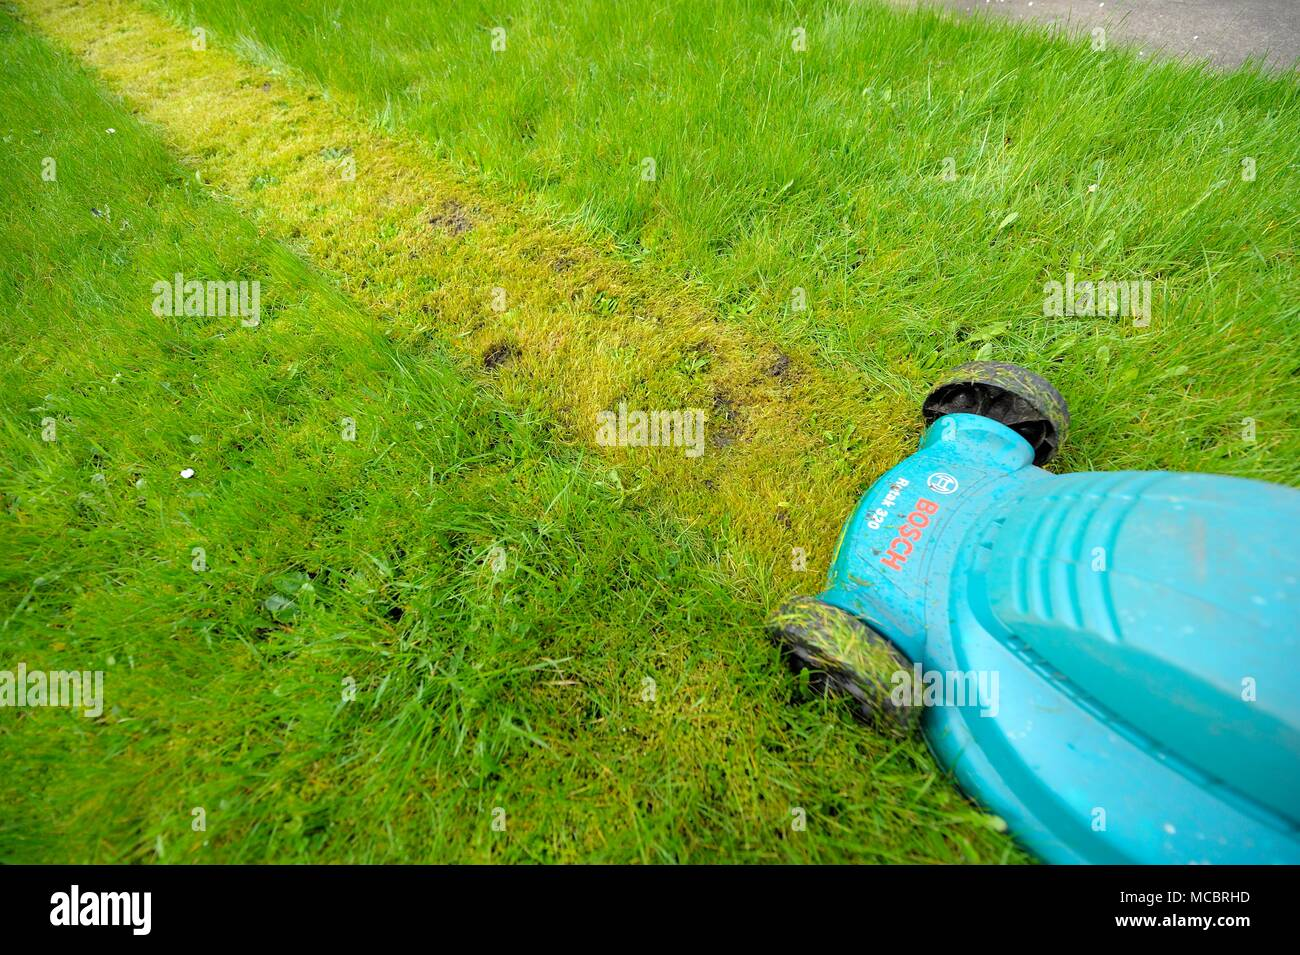 First lawn cut of the year - Stock Image